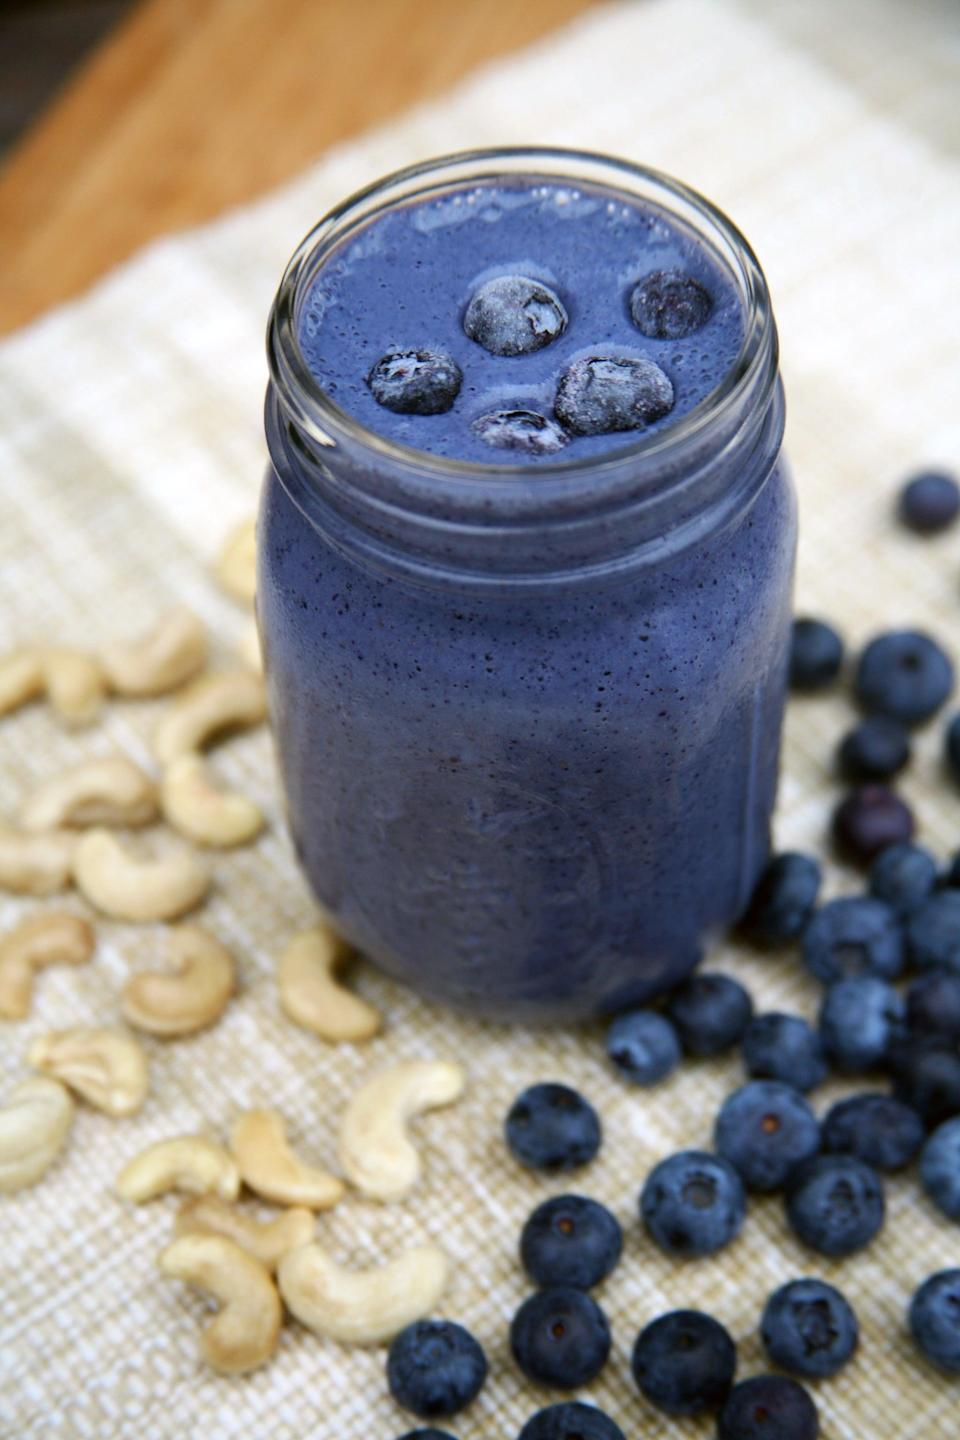 """<p>When you want something that tastes like dessert but still has almost 16 grams of protein and is rich in antioxidants, the blueberry cheesecake smoothie is here for you.</p> <p><strong>Protein:</strong> 15.9 grams</p> <p><strong>Get the recipe:</strong> <a href=""""https://www.popsugar.com/fitness/Blueberry-Cheesecake-Smoothie-40681216"""" class=""""link rapid-noclick-resp"""" rel=""""nofollow noopener"""" target=""""_blank"""" data-ylk=""""slk:blueberry cheesecake smoothie"""">blueberry cheesecake smoothie</a></p>"""